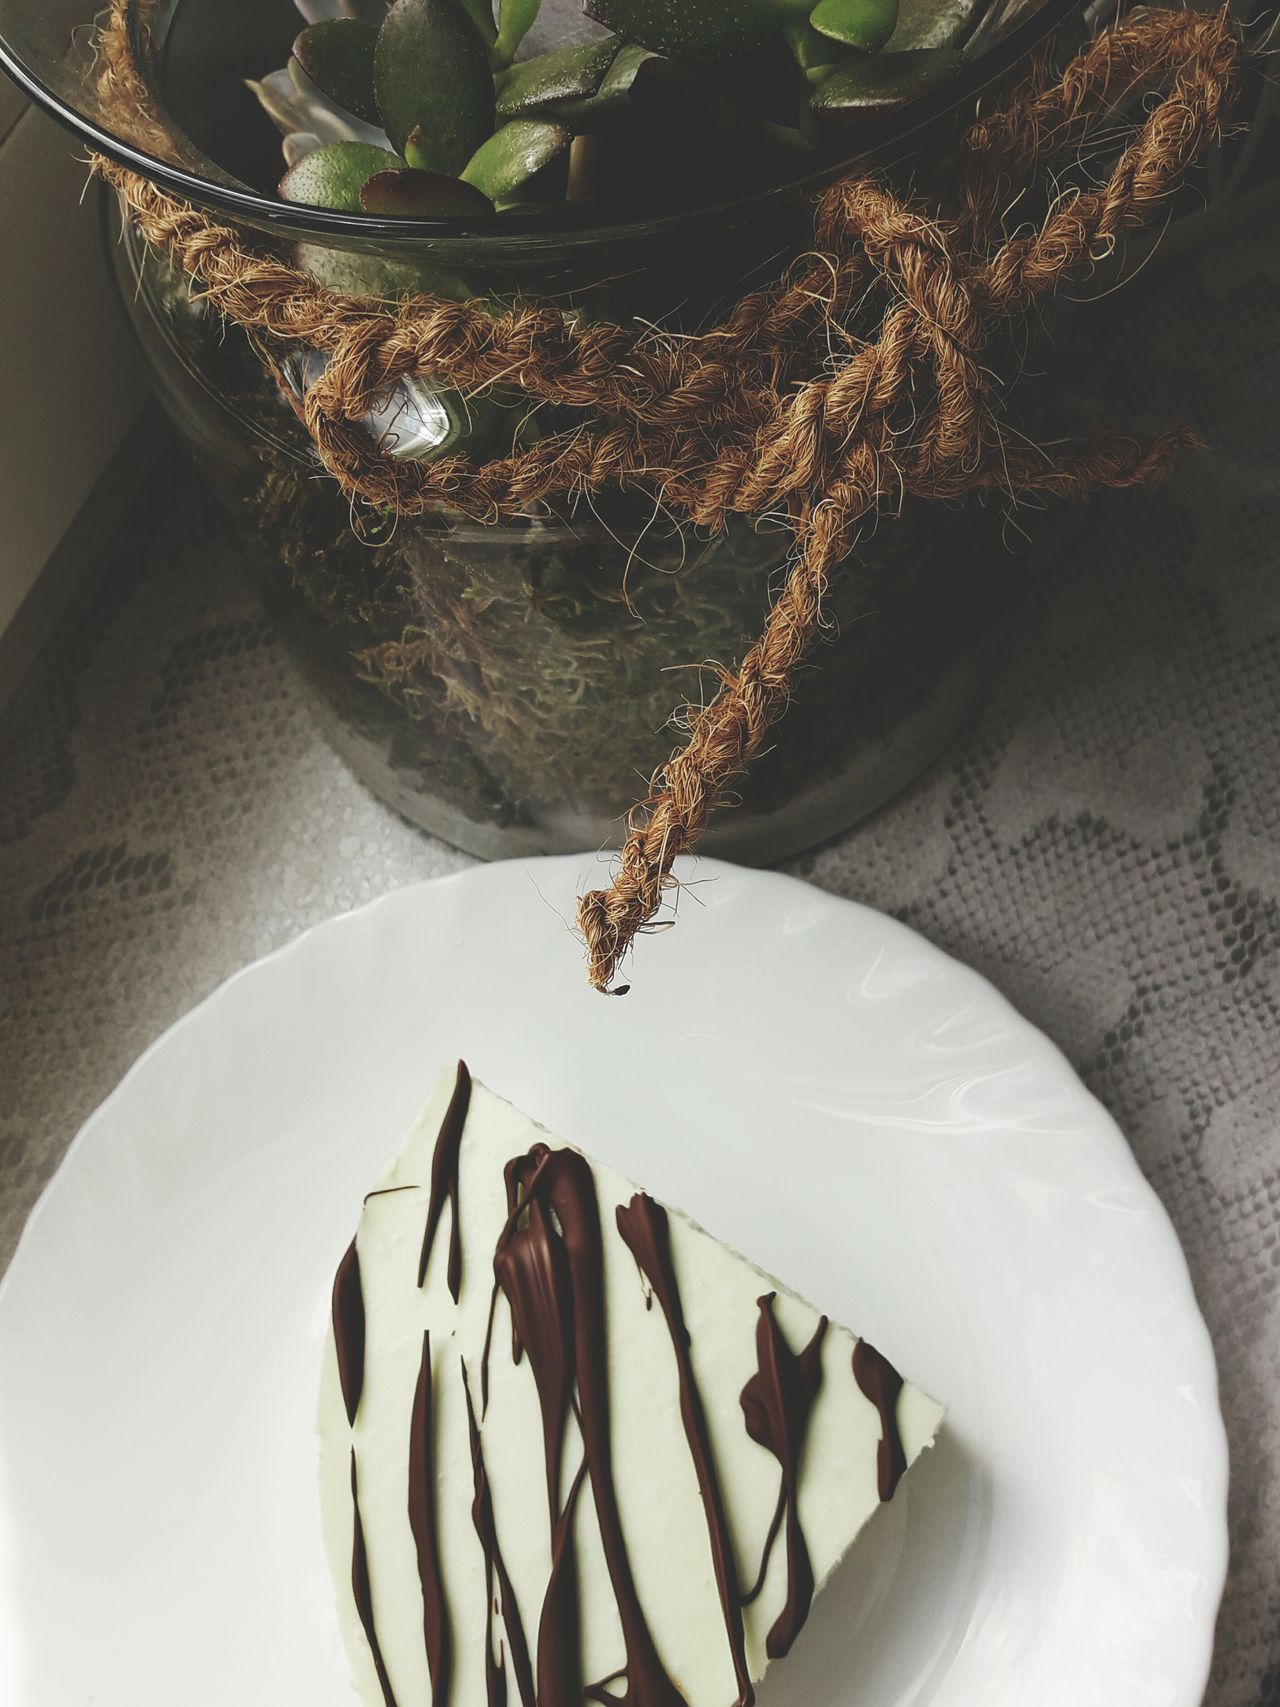 Food Sweet Food Healthy Eating Goodday Tastyfood Succulents Flowers Chocolate♡ First Eyeem Photo Cake Loveit Happyday Fitfood Dessert Decoration Freshfood Beauty In Nature Yummy 😚